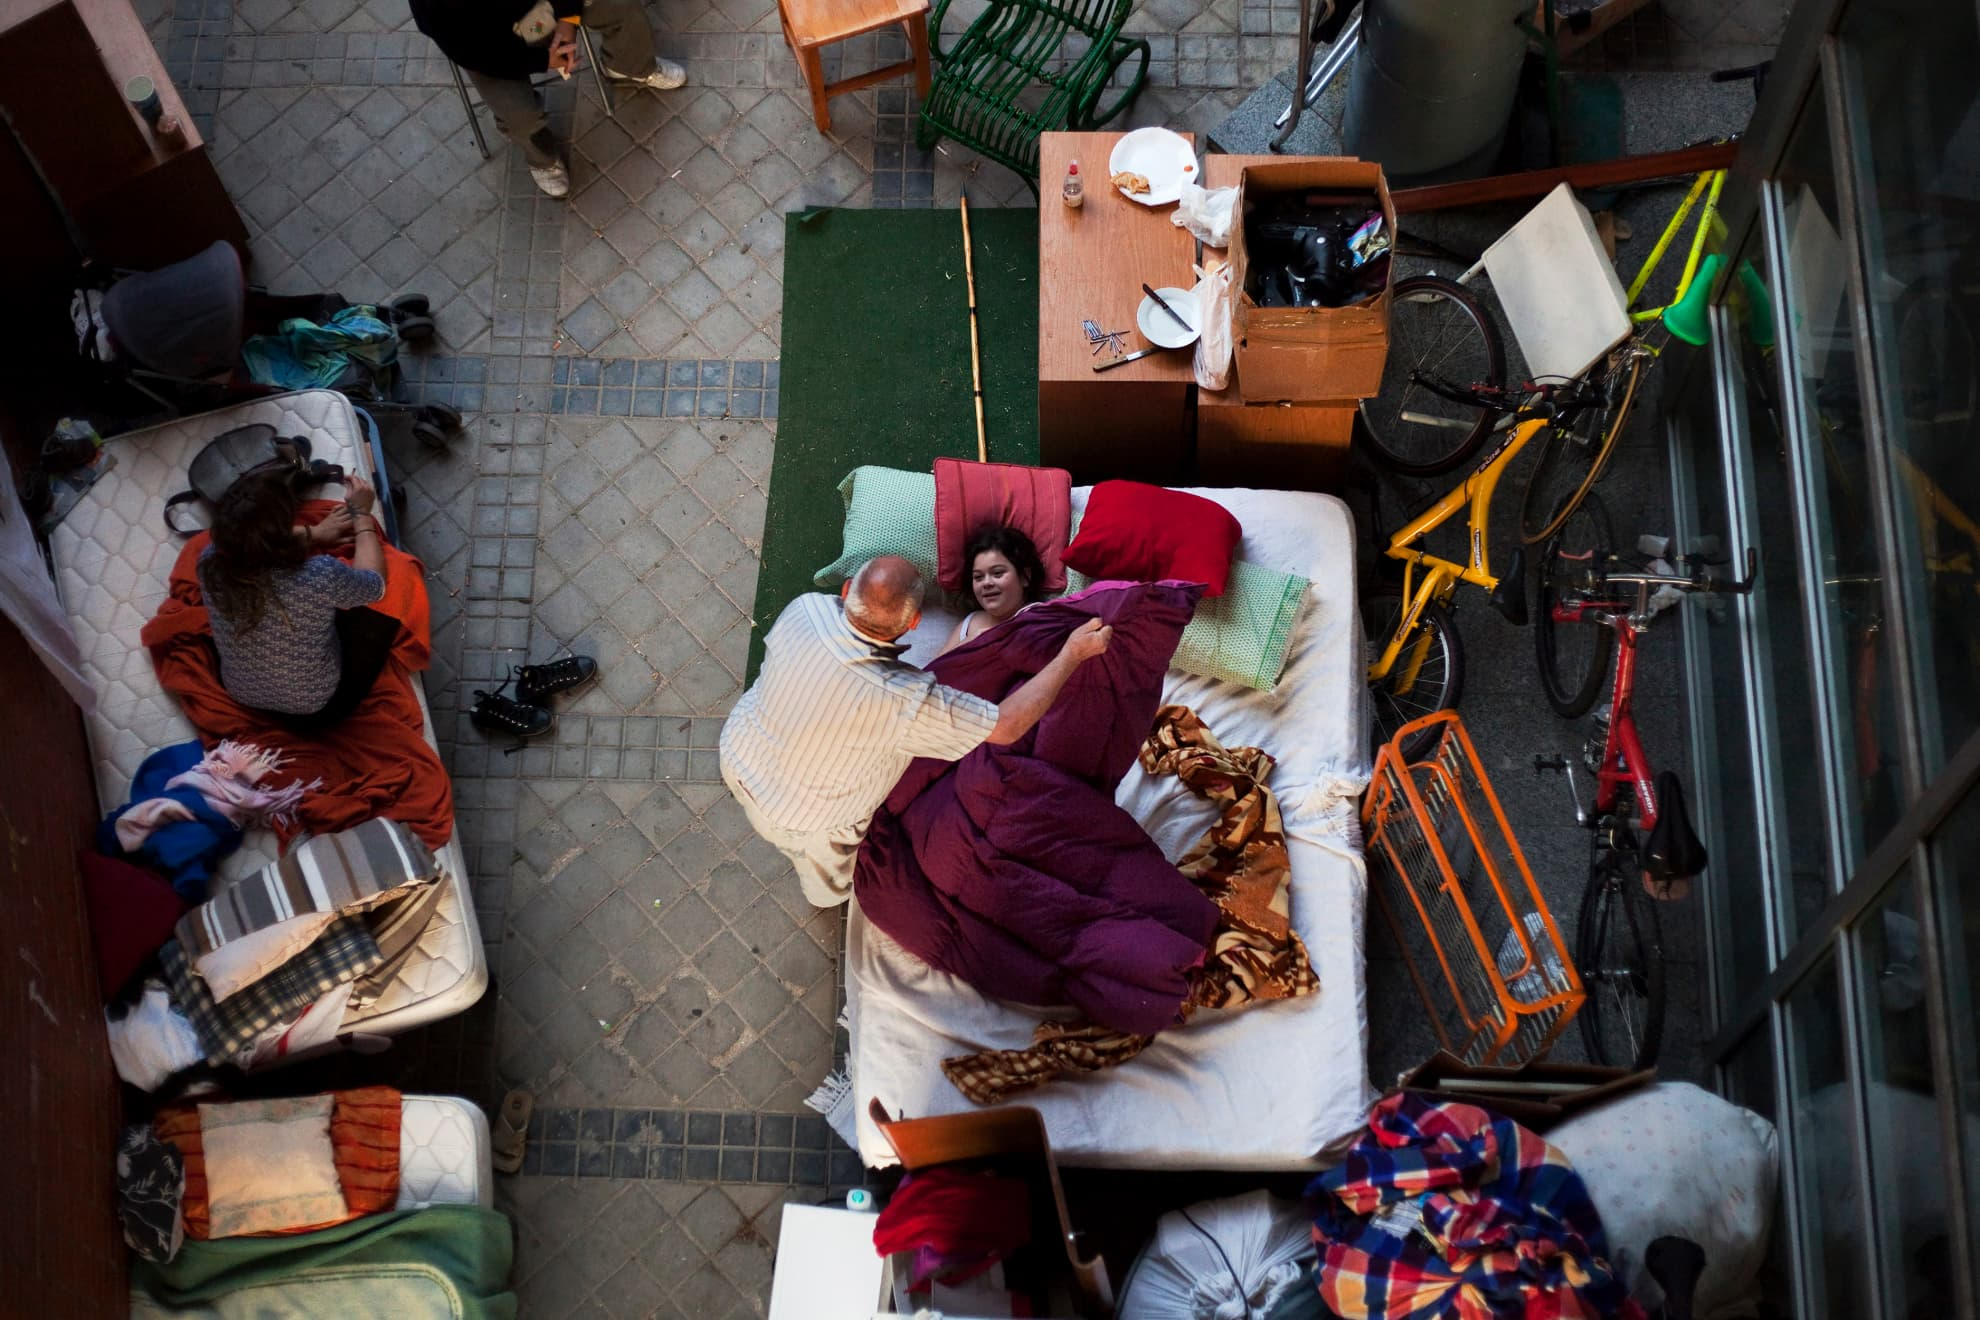 Efren Gonzalez, 68 years old, covers his granddaughter as they sleep on the street after their eviction in Madrid, Thursday, Sept. 26, 2013. Efren Rodriguez Gonzalez and six family members live in an apartment of the EMVS for 24 years and they had a debt of 1,200 euros.